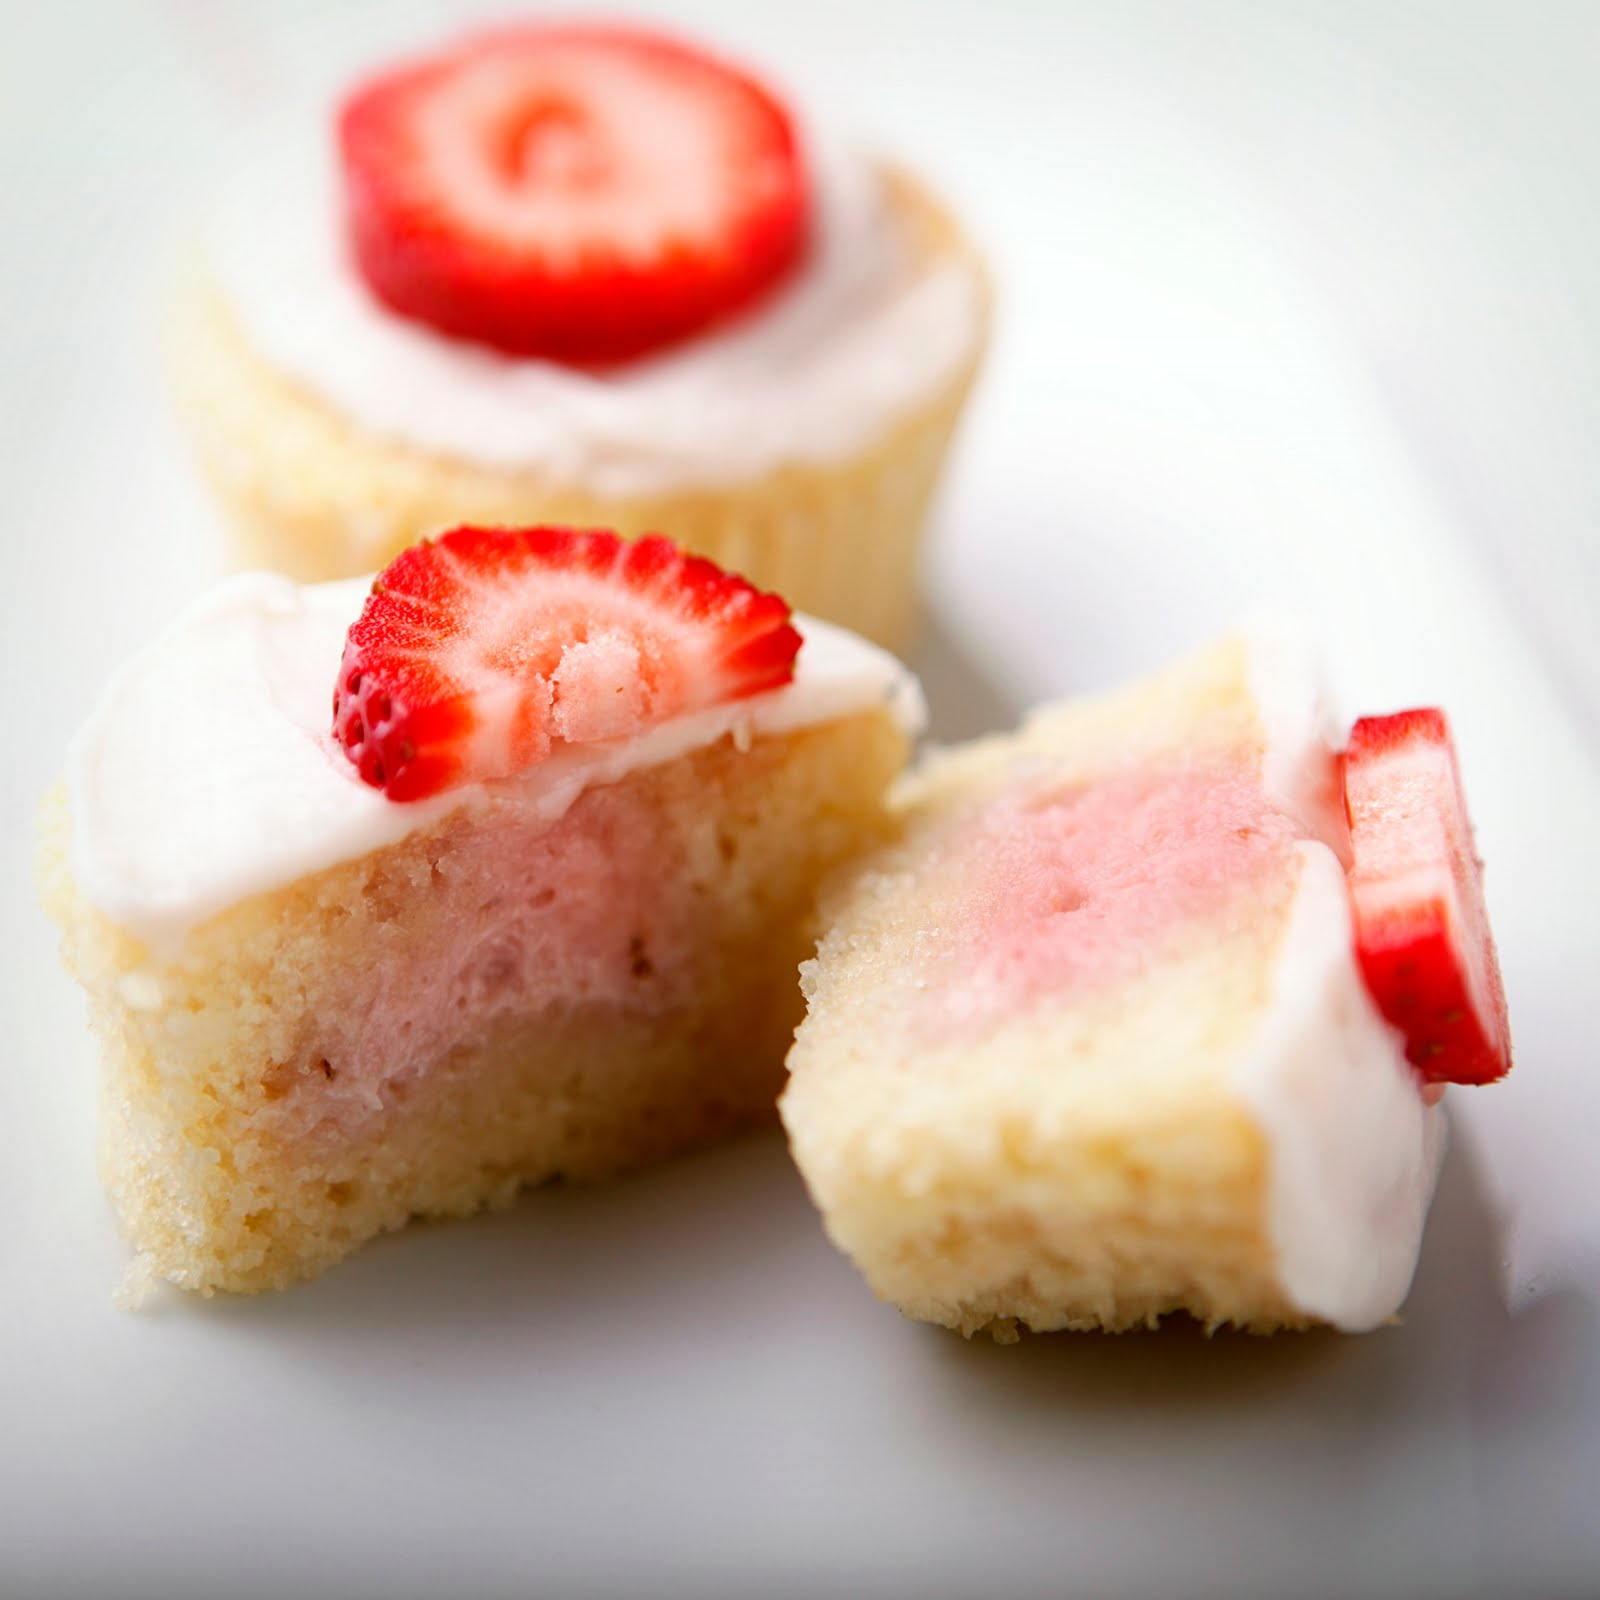 Strawberry Filled Cupcakes with Cake Mix